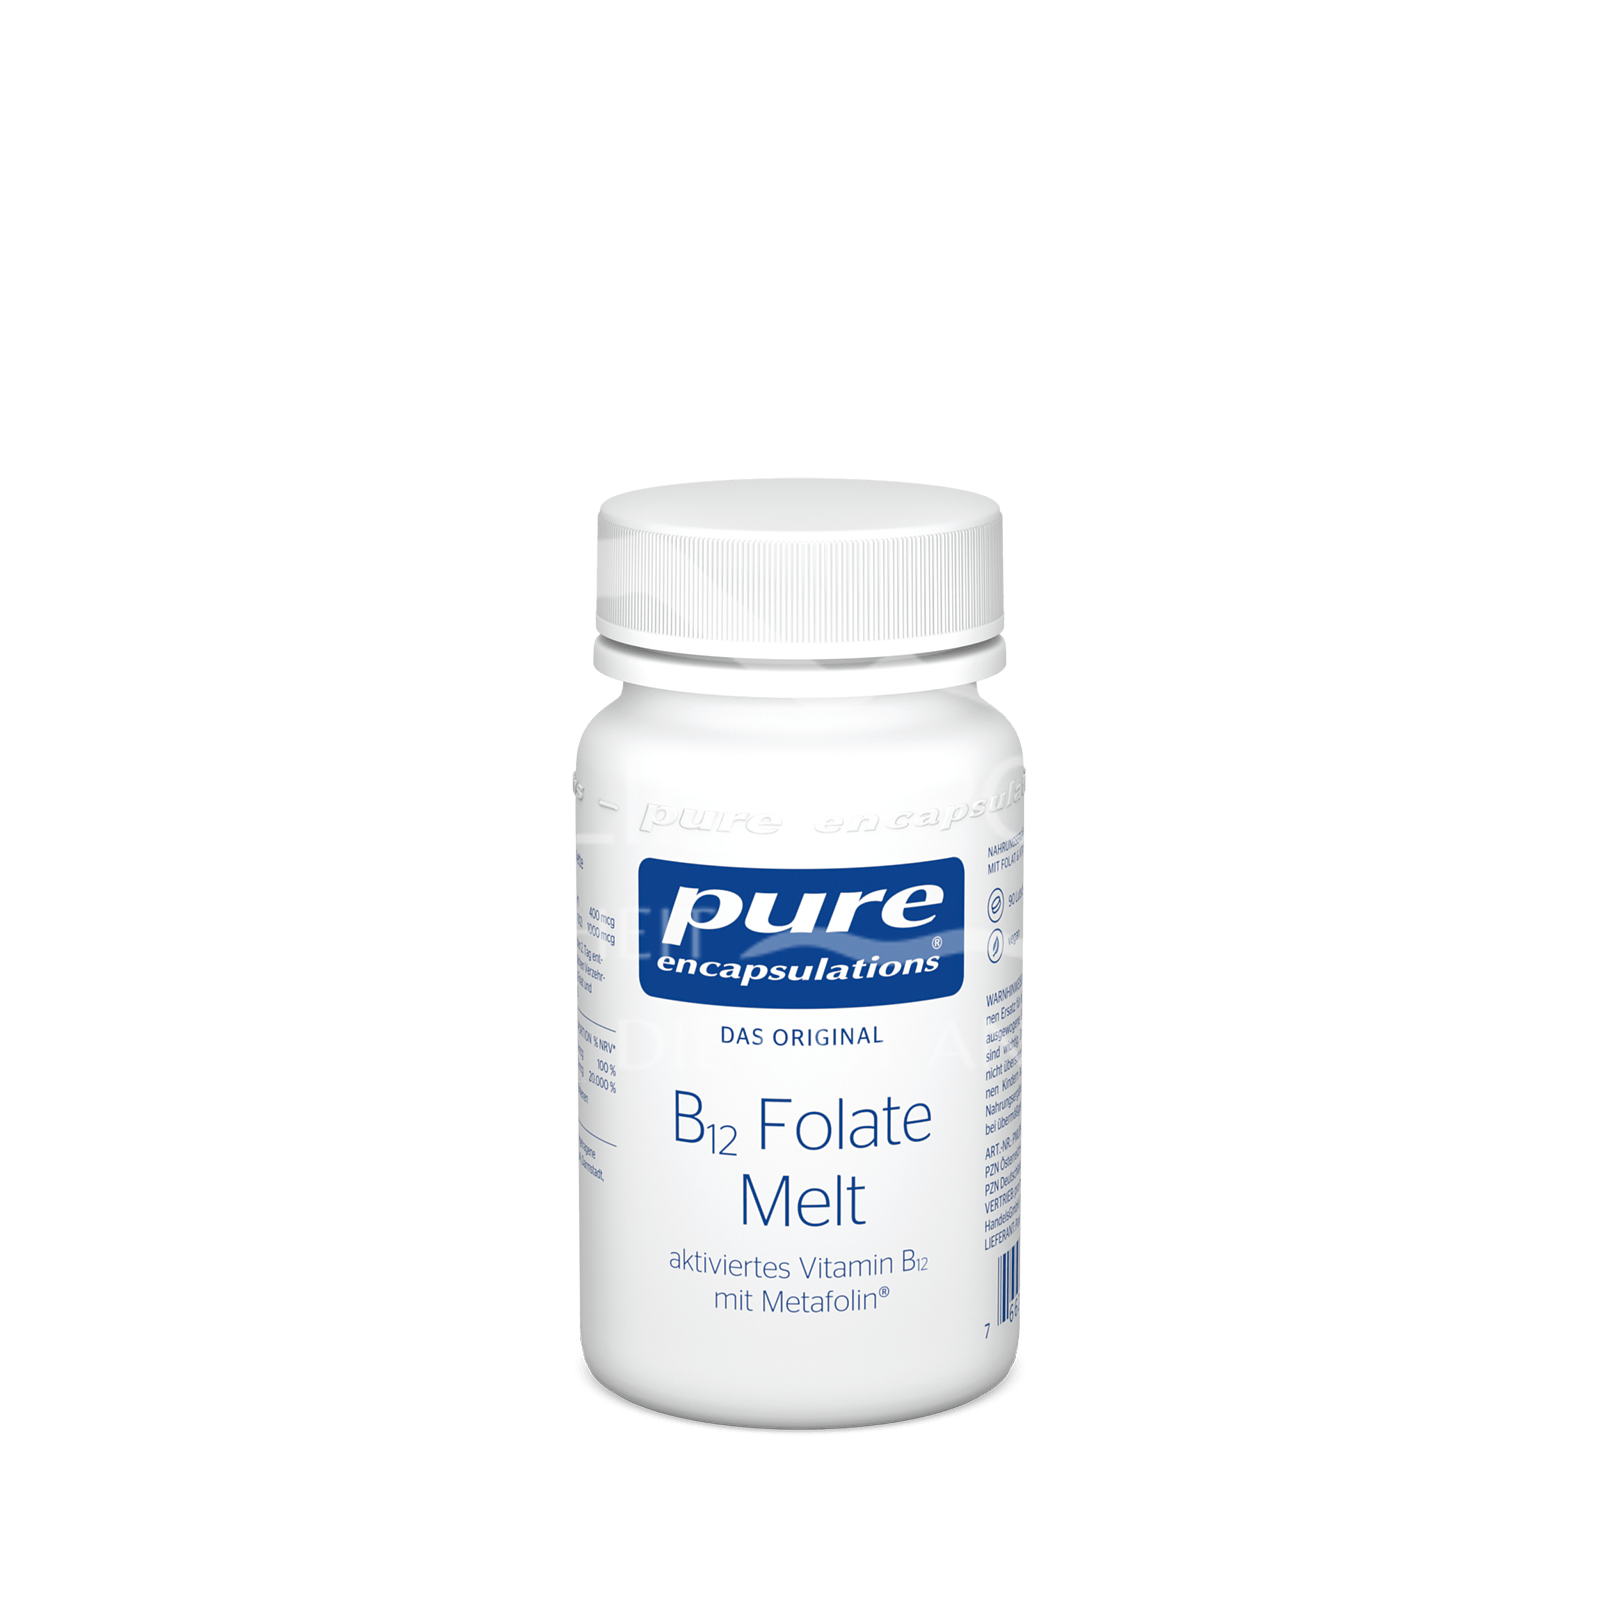 pure encapsulations® B12 Folate Melt